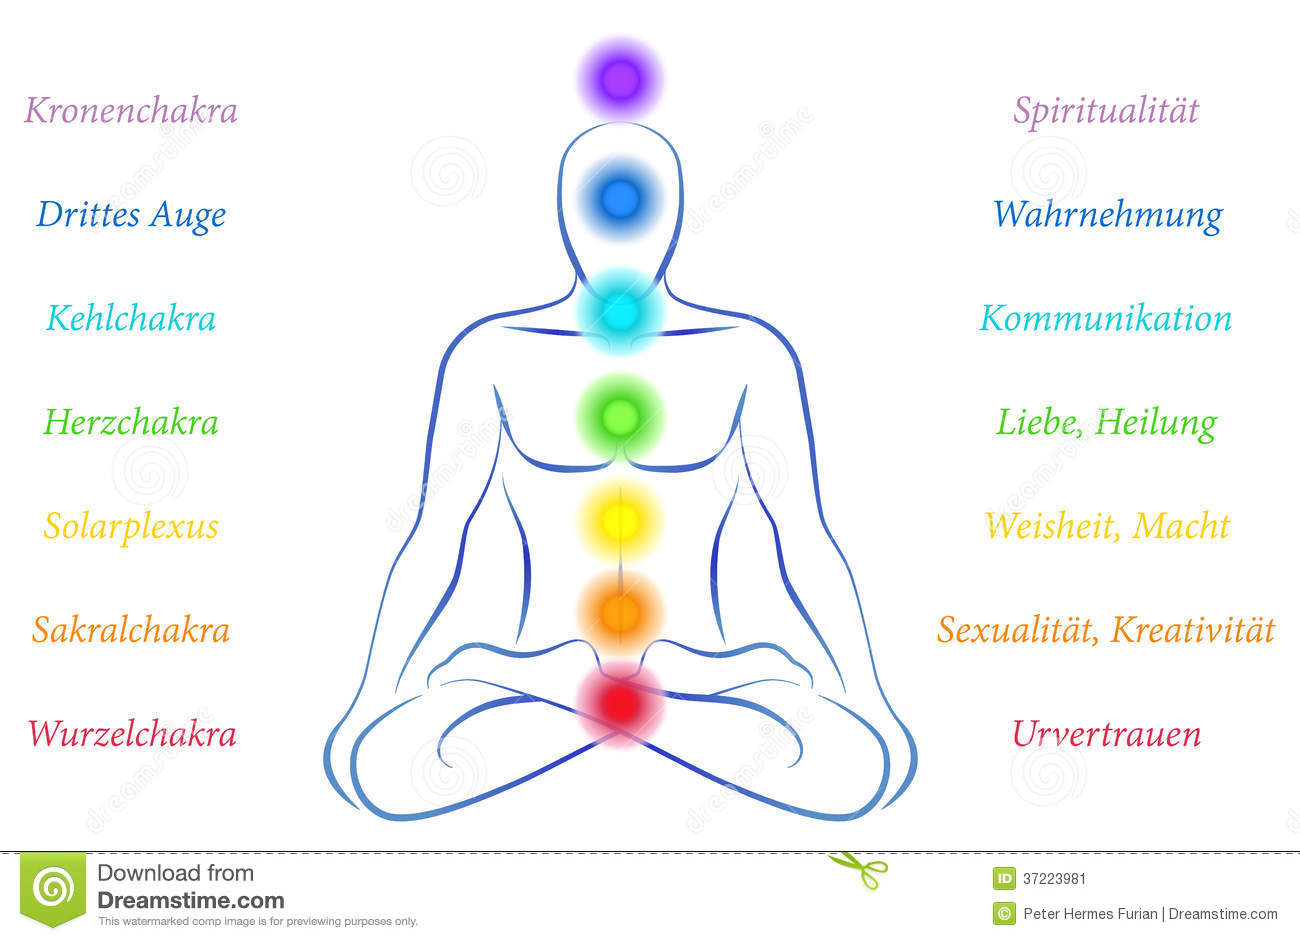 with the seven main chakras and their meanings german labeling